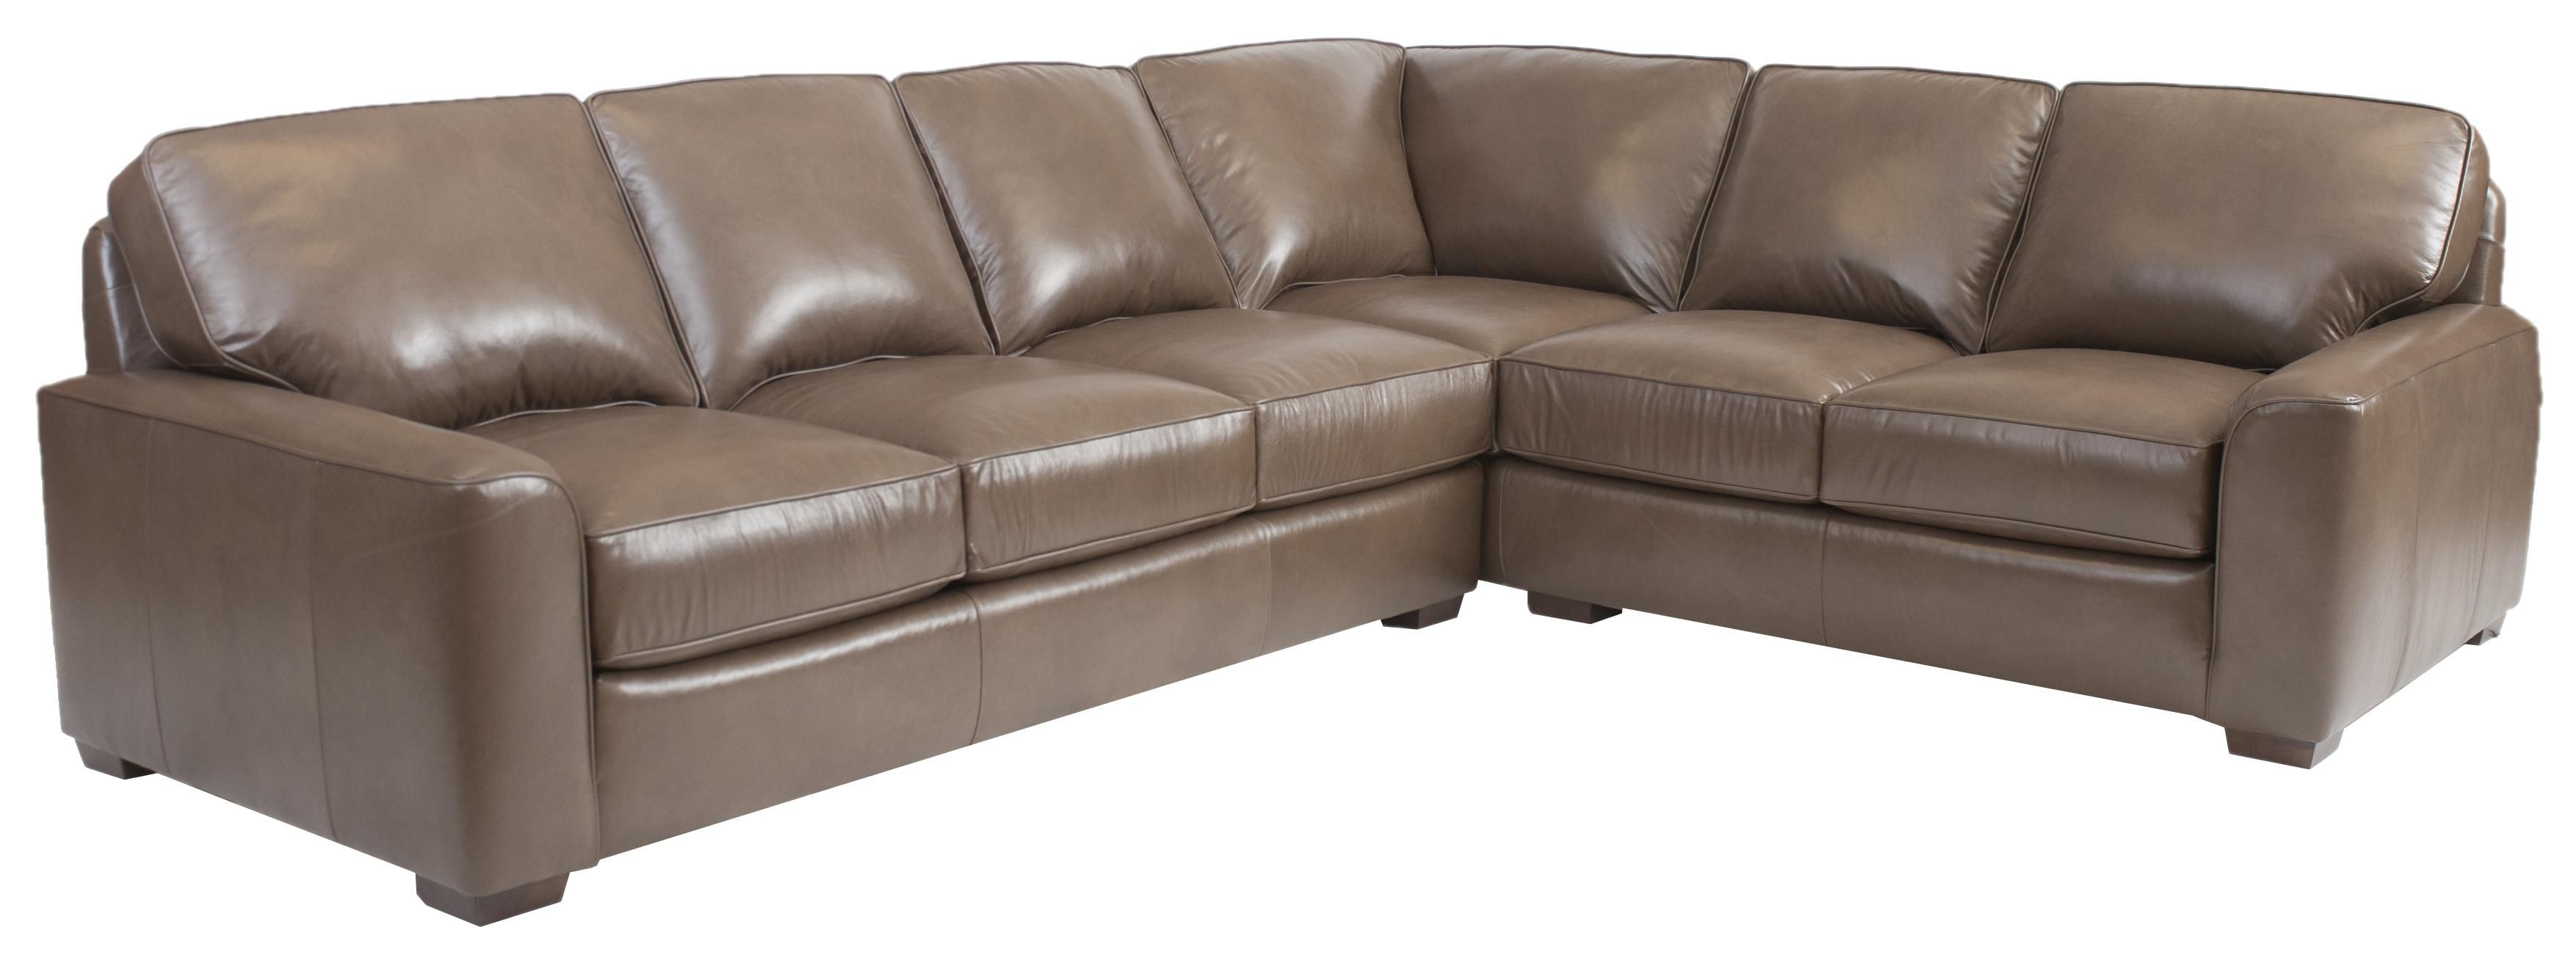 Build Your Own 8000 Series Sectional Sofa by Smith Brothers